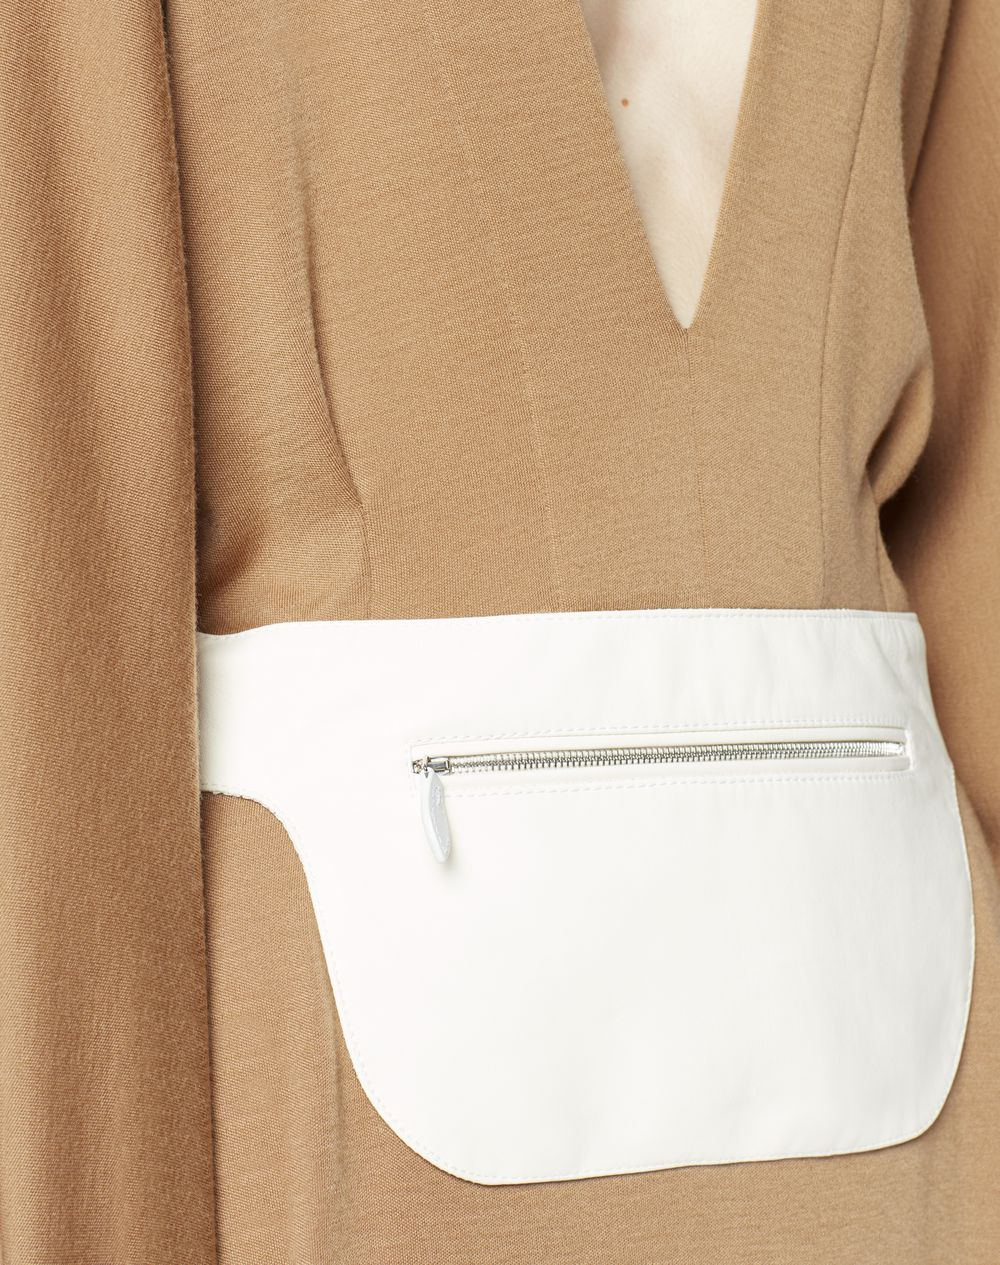 WOOL DRESS WITH LEATHER BELT - Lanvin